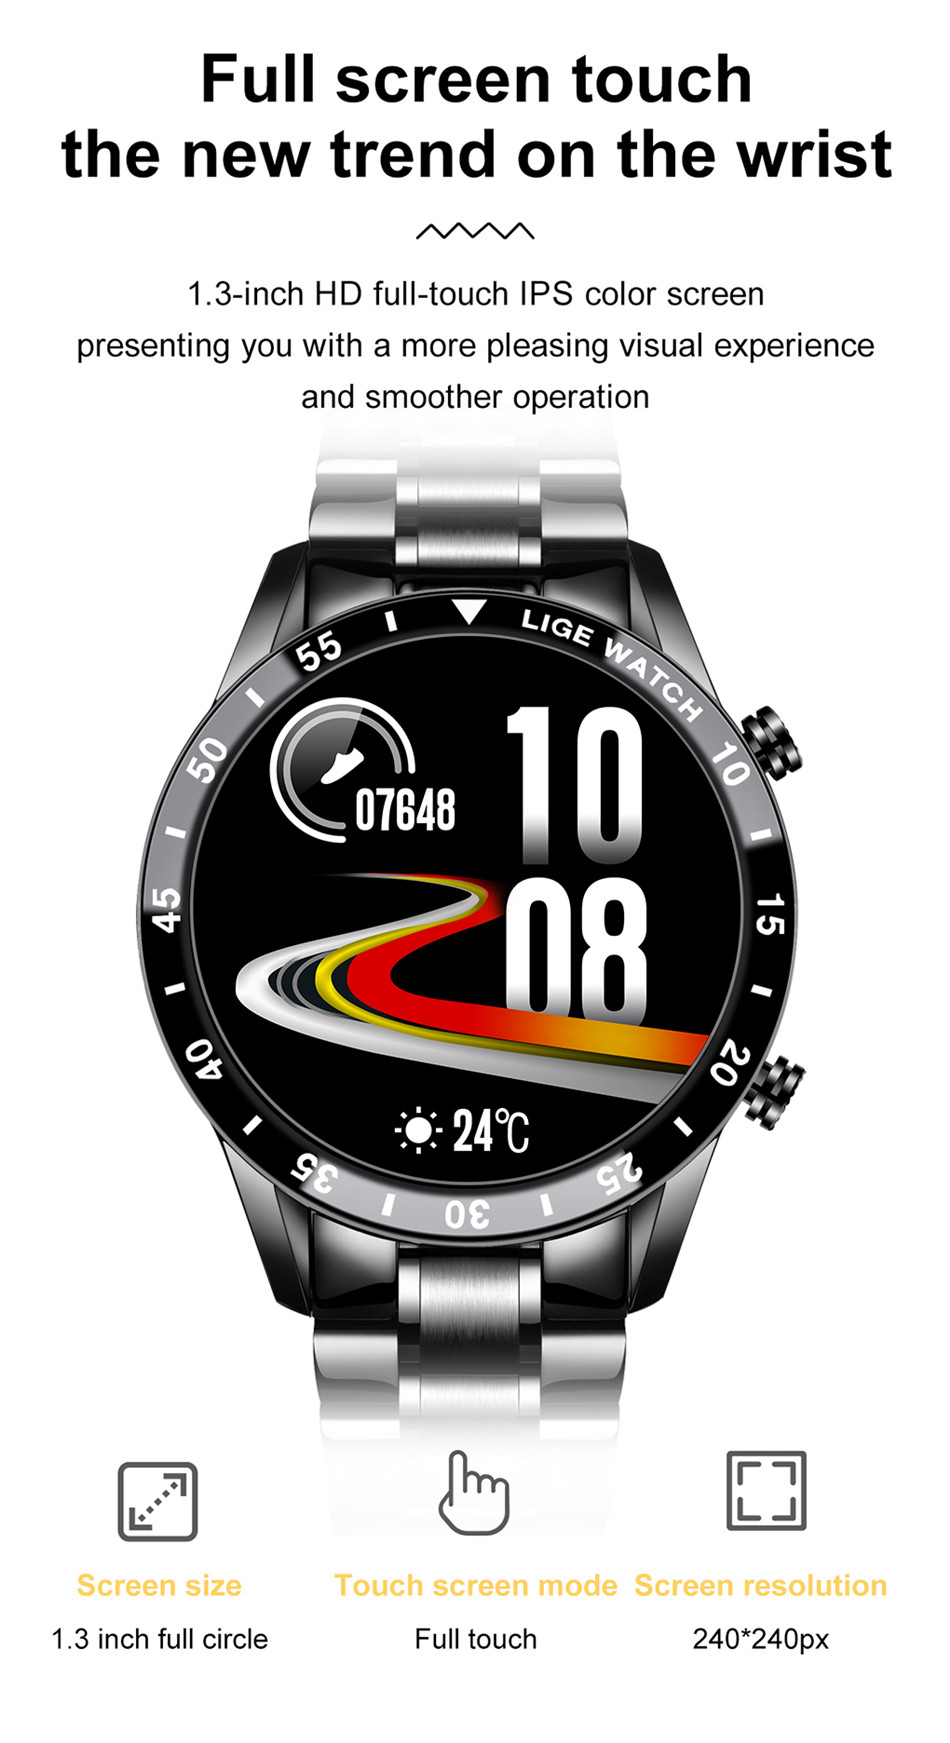 Ha4d763dca01043a4a14dd47a69e3d6e0s LIGE 2020 New Smart Watch Men Full Touch Screen Sports Fitness Watch IP67 Waterproof Bluetooth For Android ios smartwatch Mens